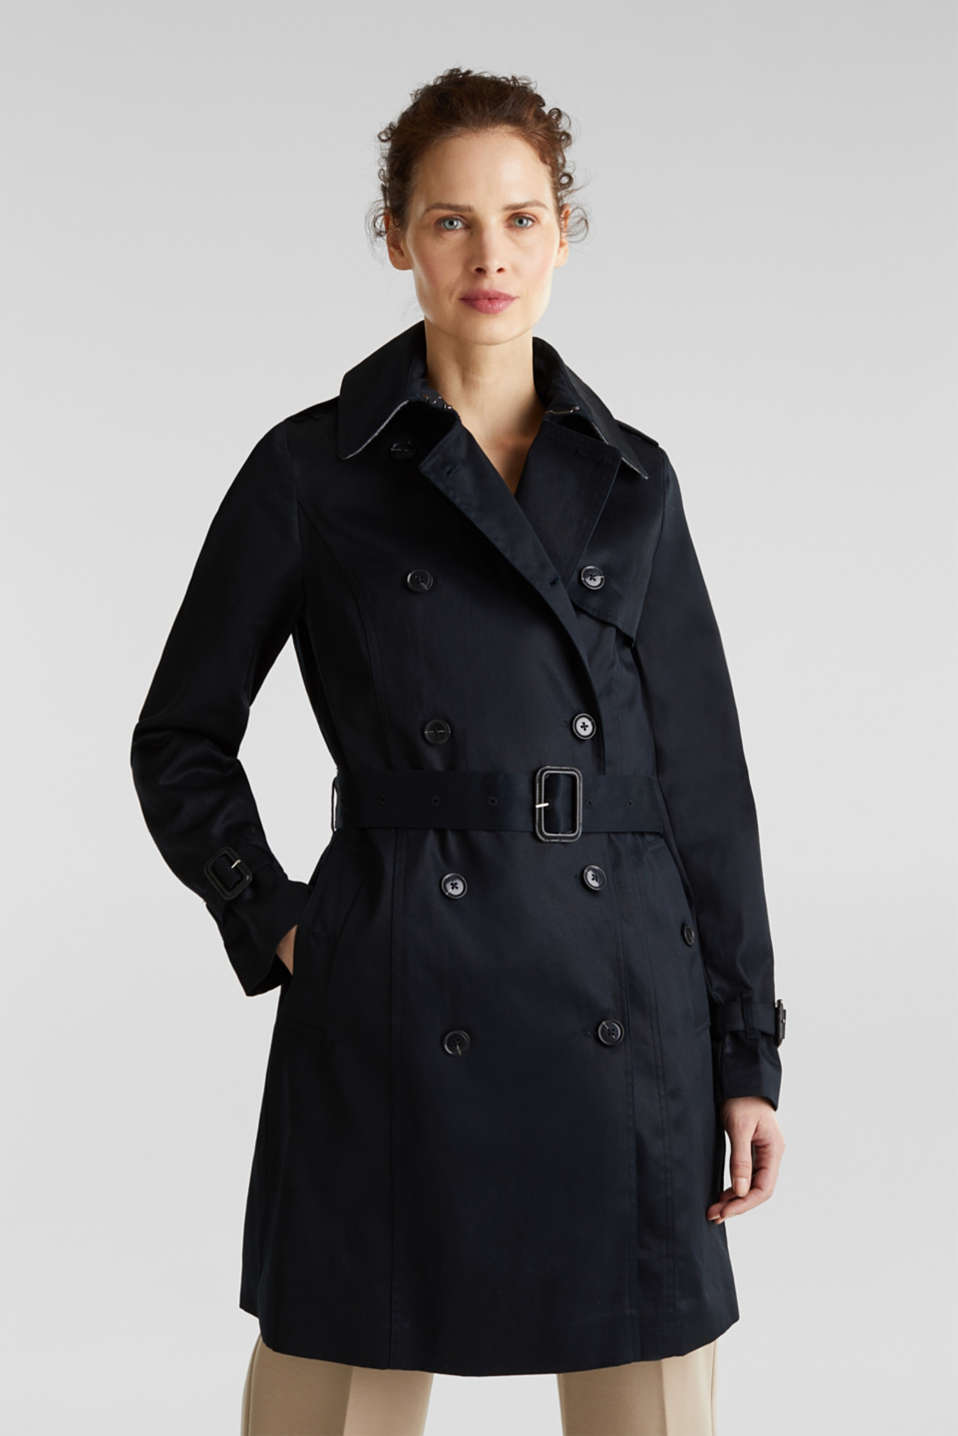 Esprit - Double-breasted trenchcoat, 100% katoen